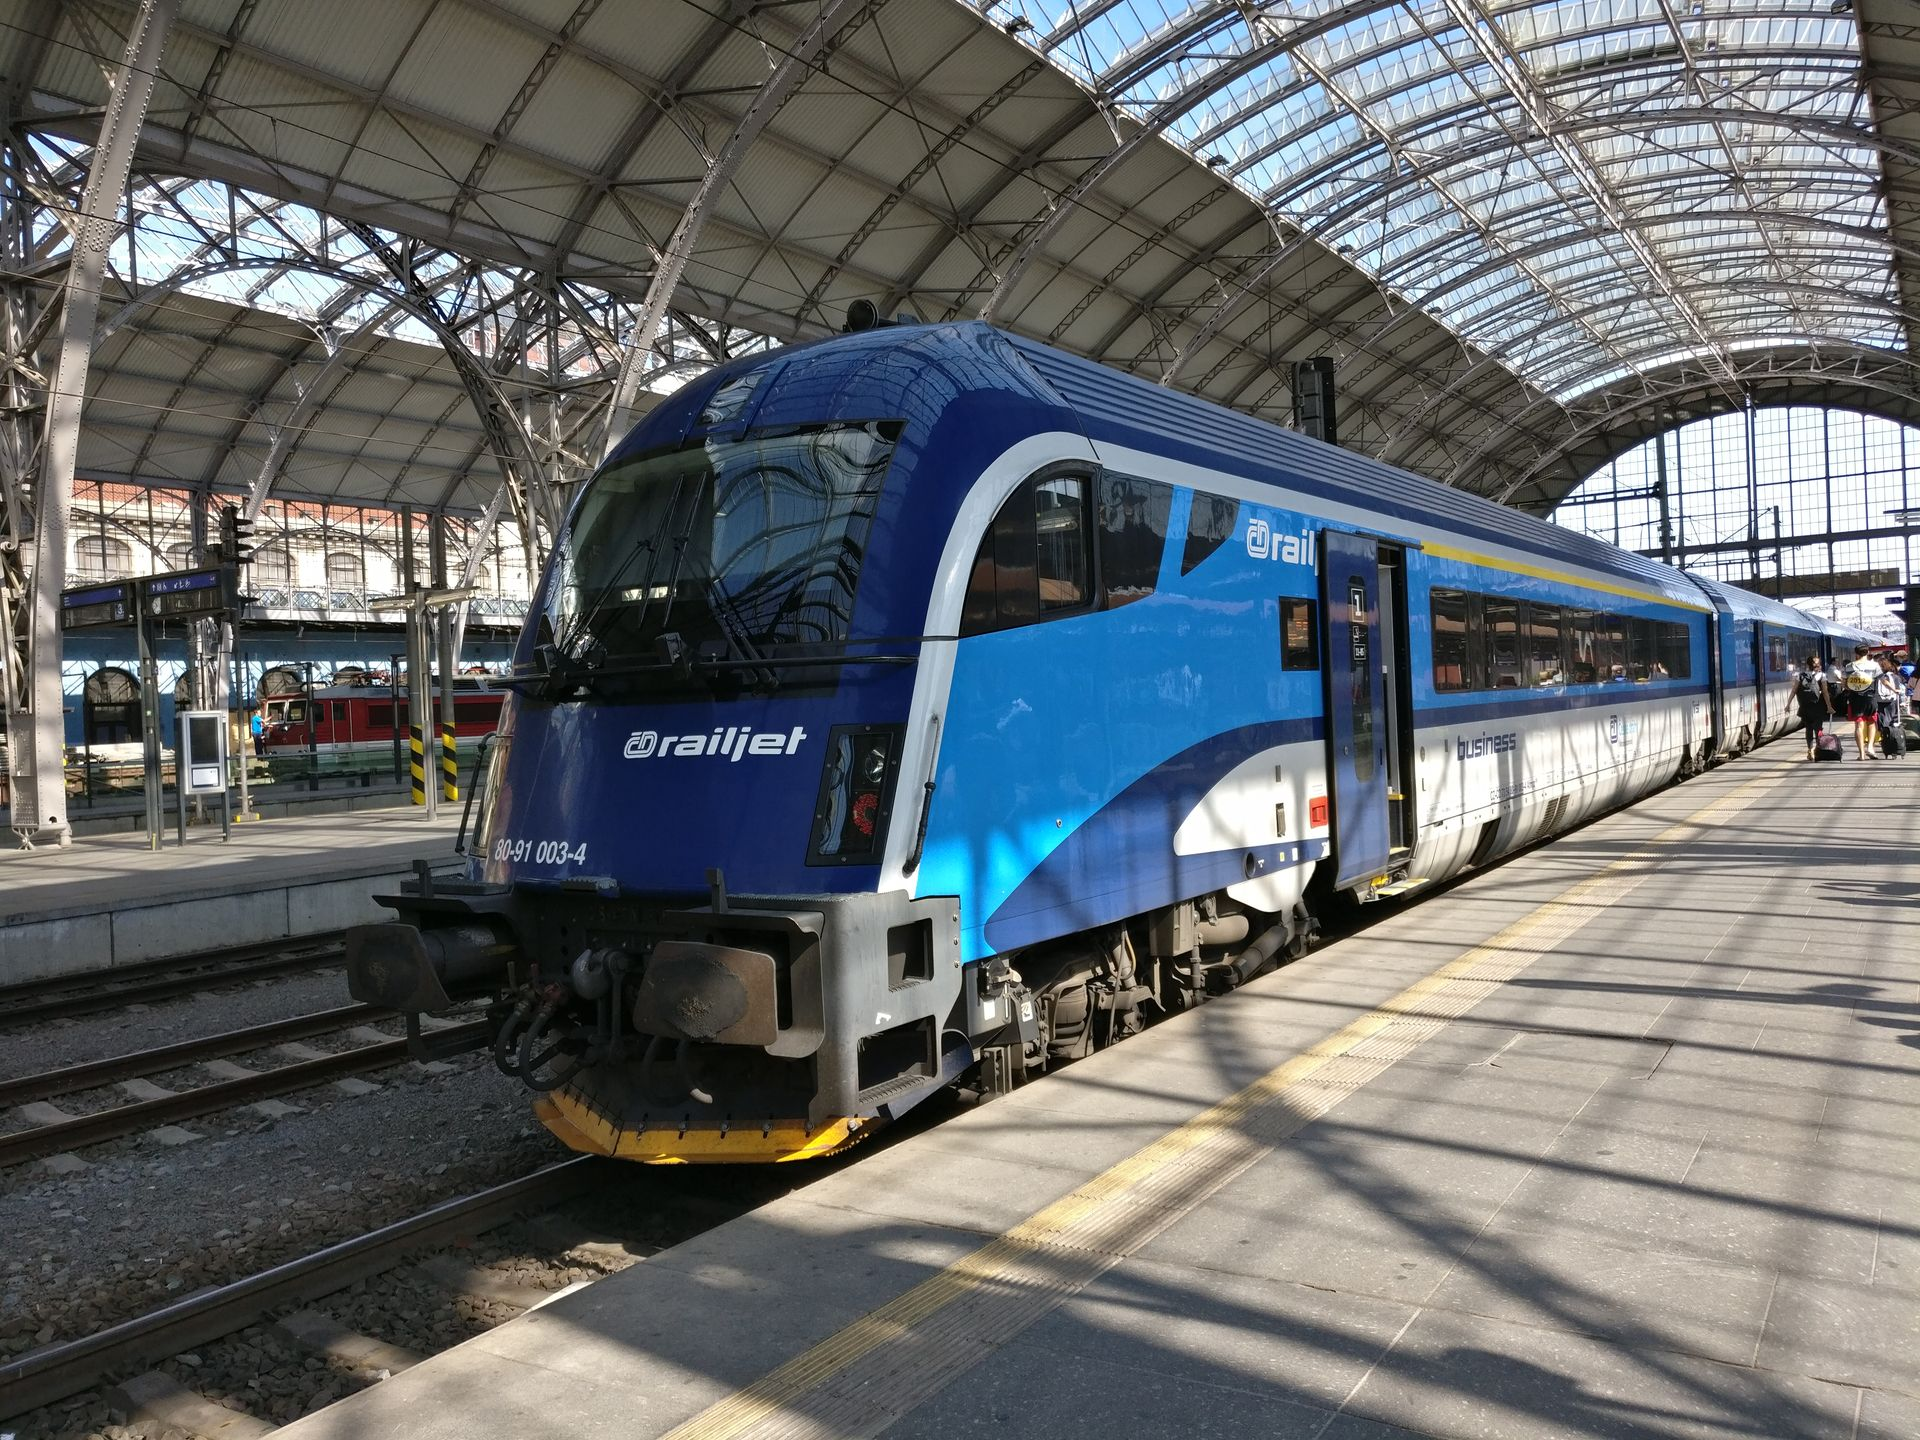 Railjet Prague